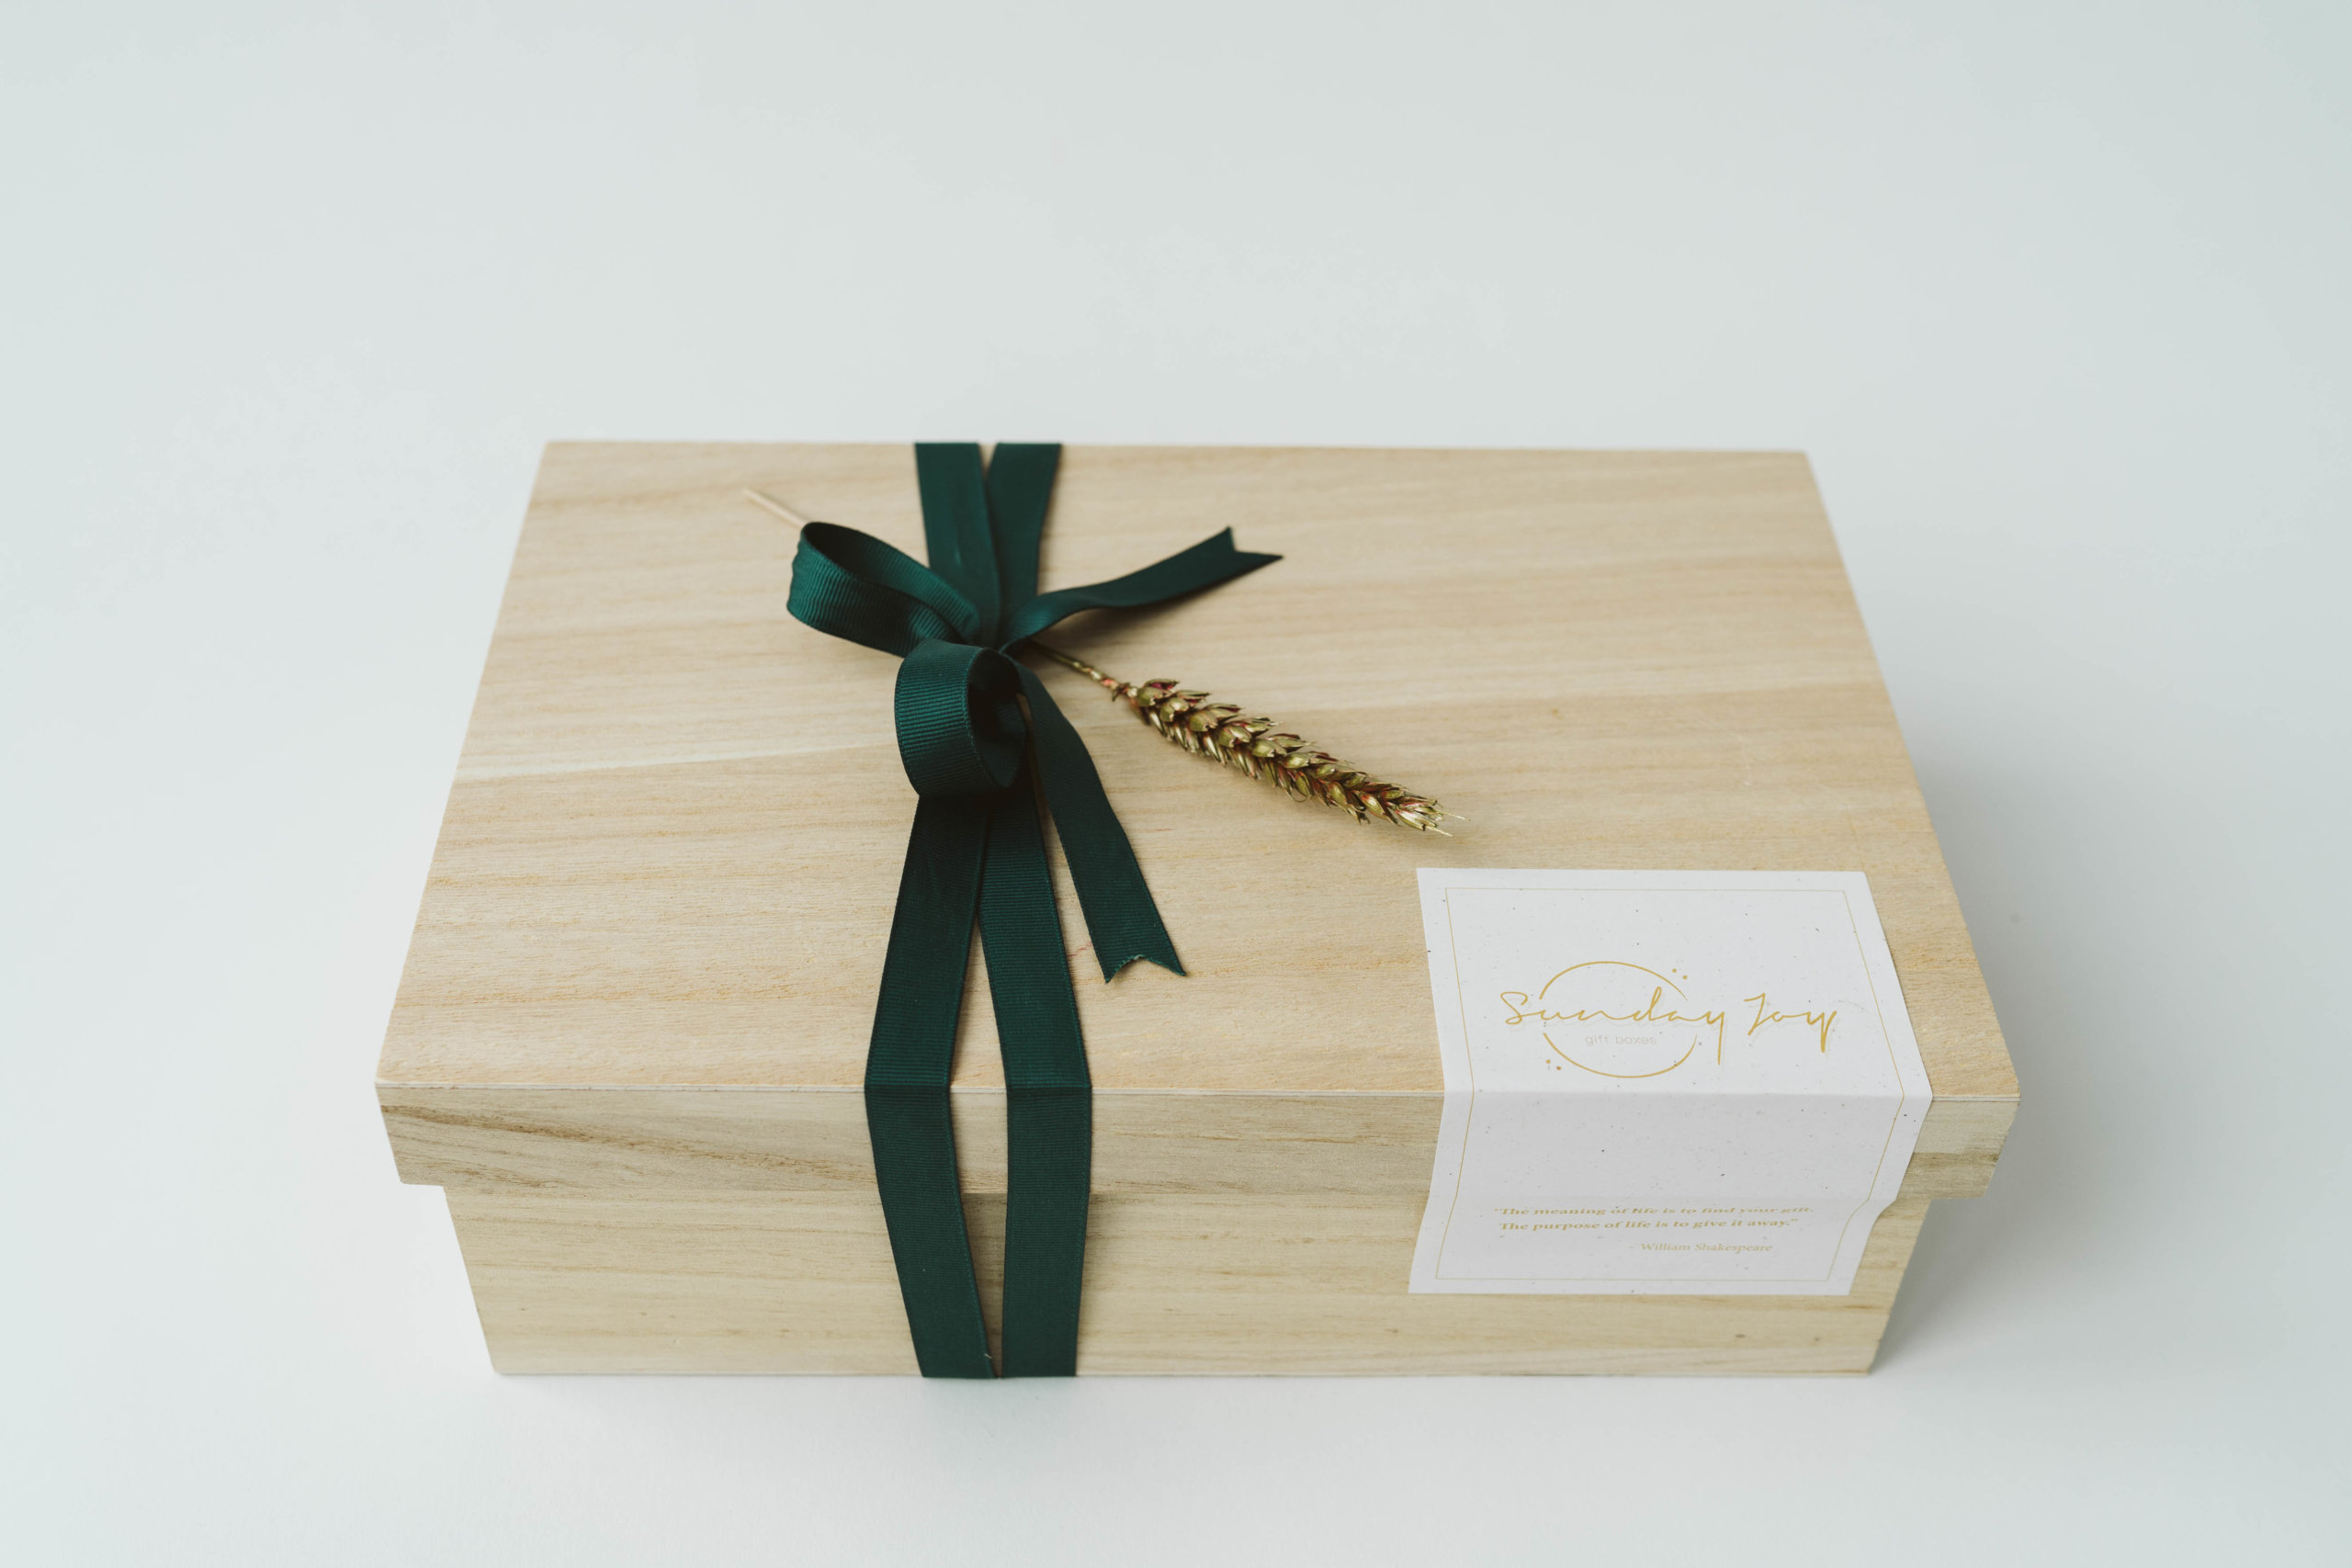 The perfect gift box